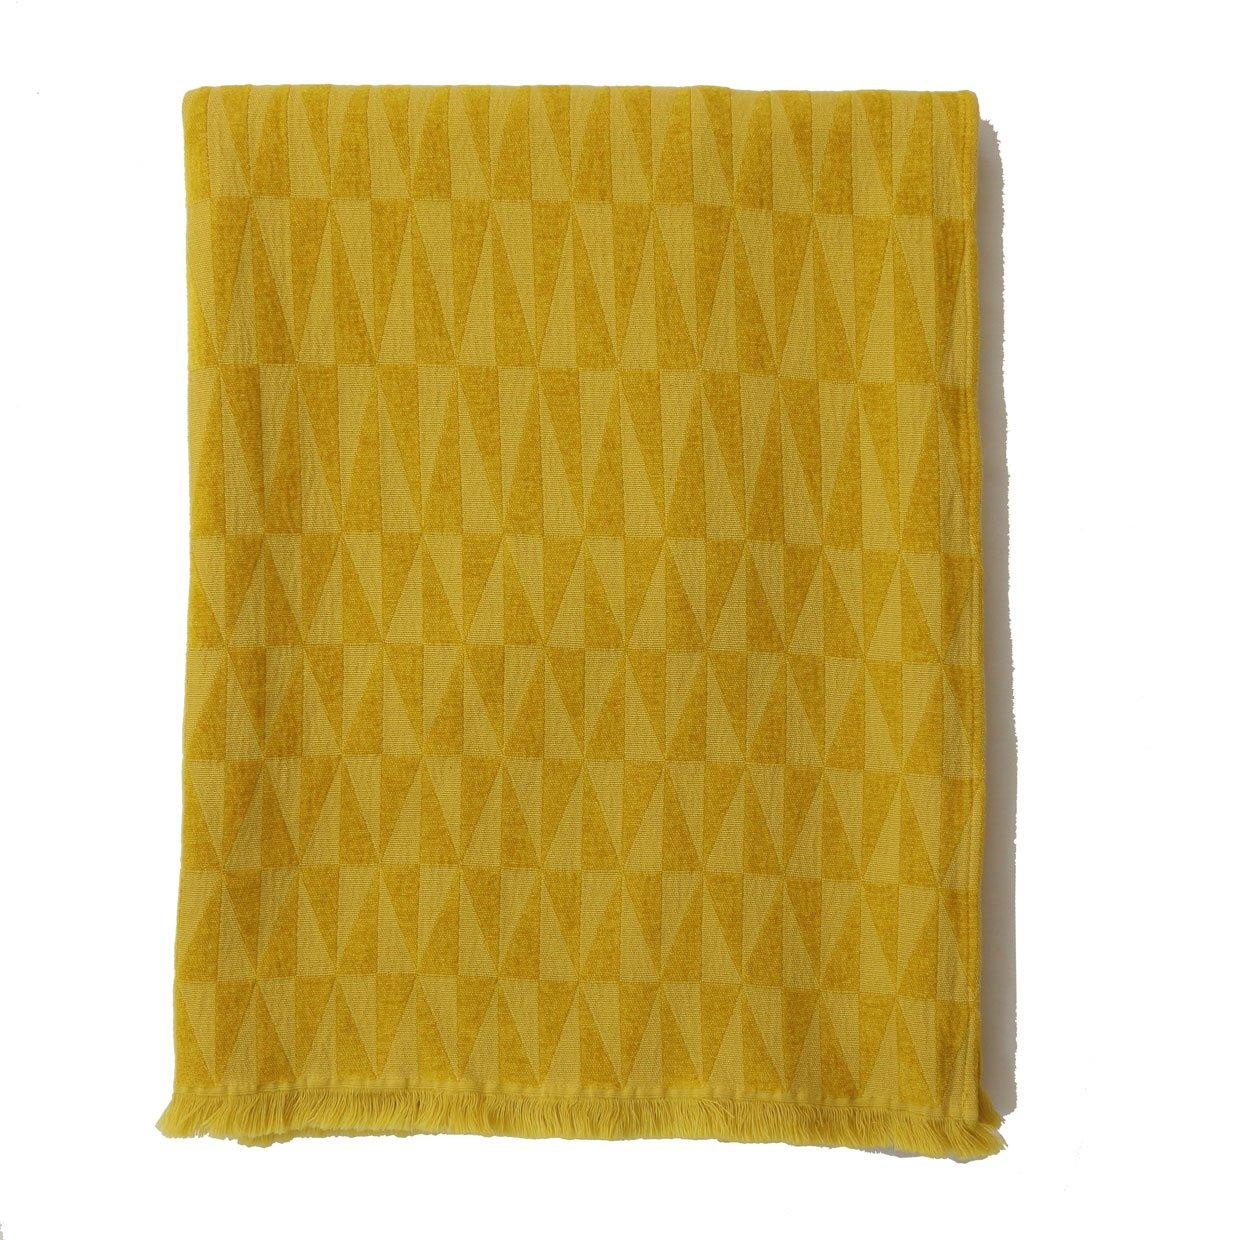 """Available in the pictured goldenrod—which is perhaps the most autumnal shade of them all—and five additional earth tones (all hand-dyed), this timeless knit throw from Johanna Howard is made of cotton and chenille for a luxe softness. $195, Johanna Howard Home. <a href=""""https://www.johannahoward.com/collections/throws/products/apex-throw"""" rel=""""nofollow noopener"""" target=""""_blank"""" data-ylk=""""slk:Get it now!"""" class=""""link rapid-noclick-resp"""">Get it now!</a>"""